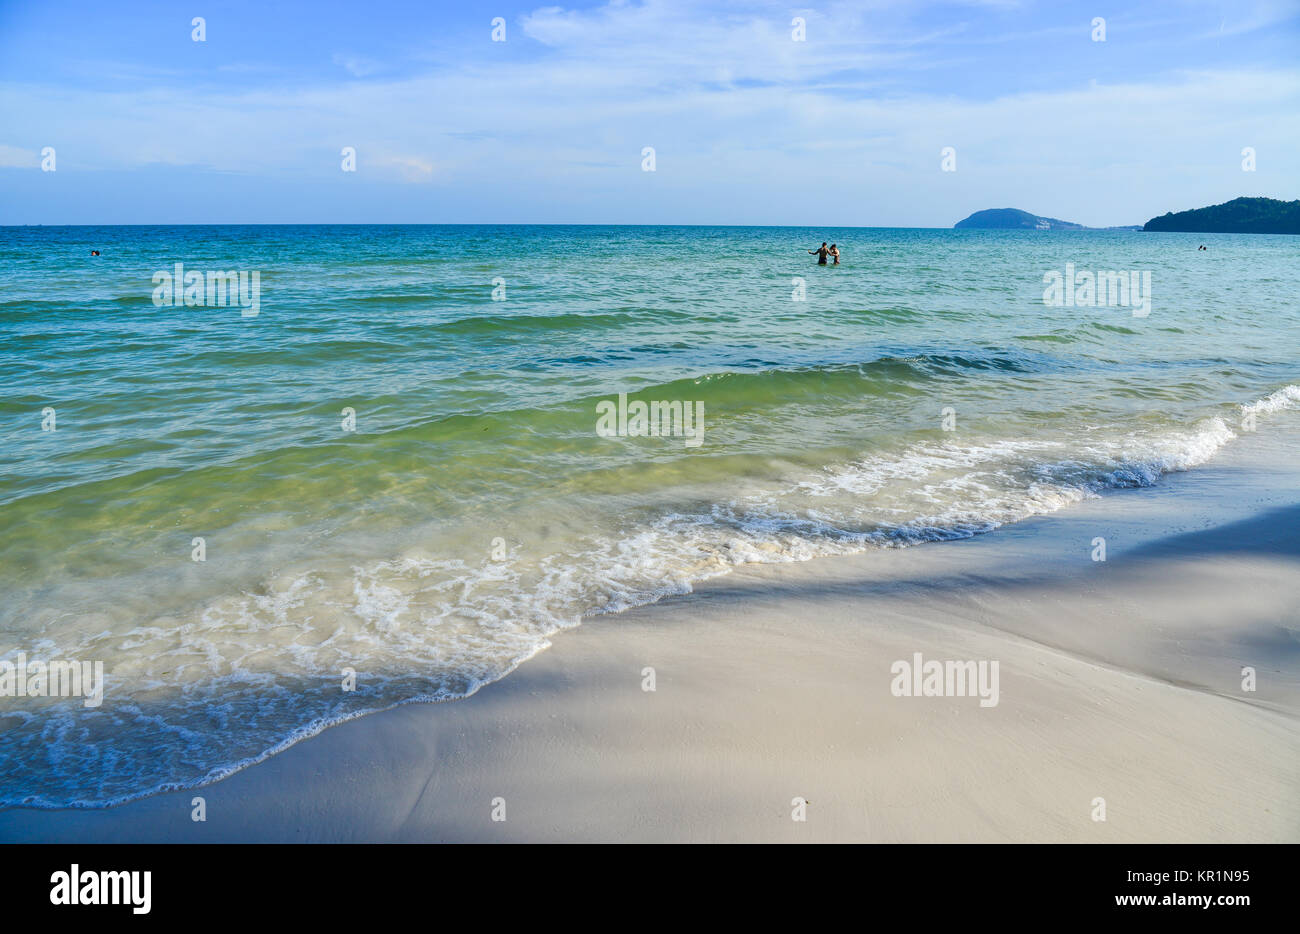 Seascape of Phu Quoc Island in Kien Giang, Vietnam. - Stock Image